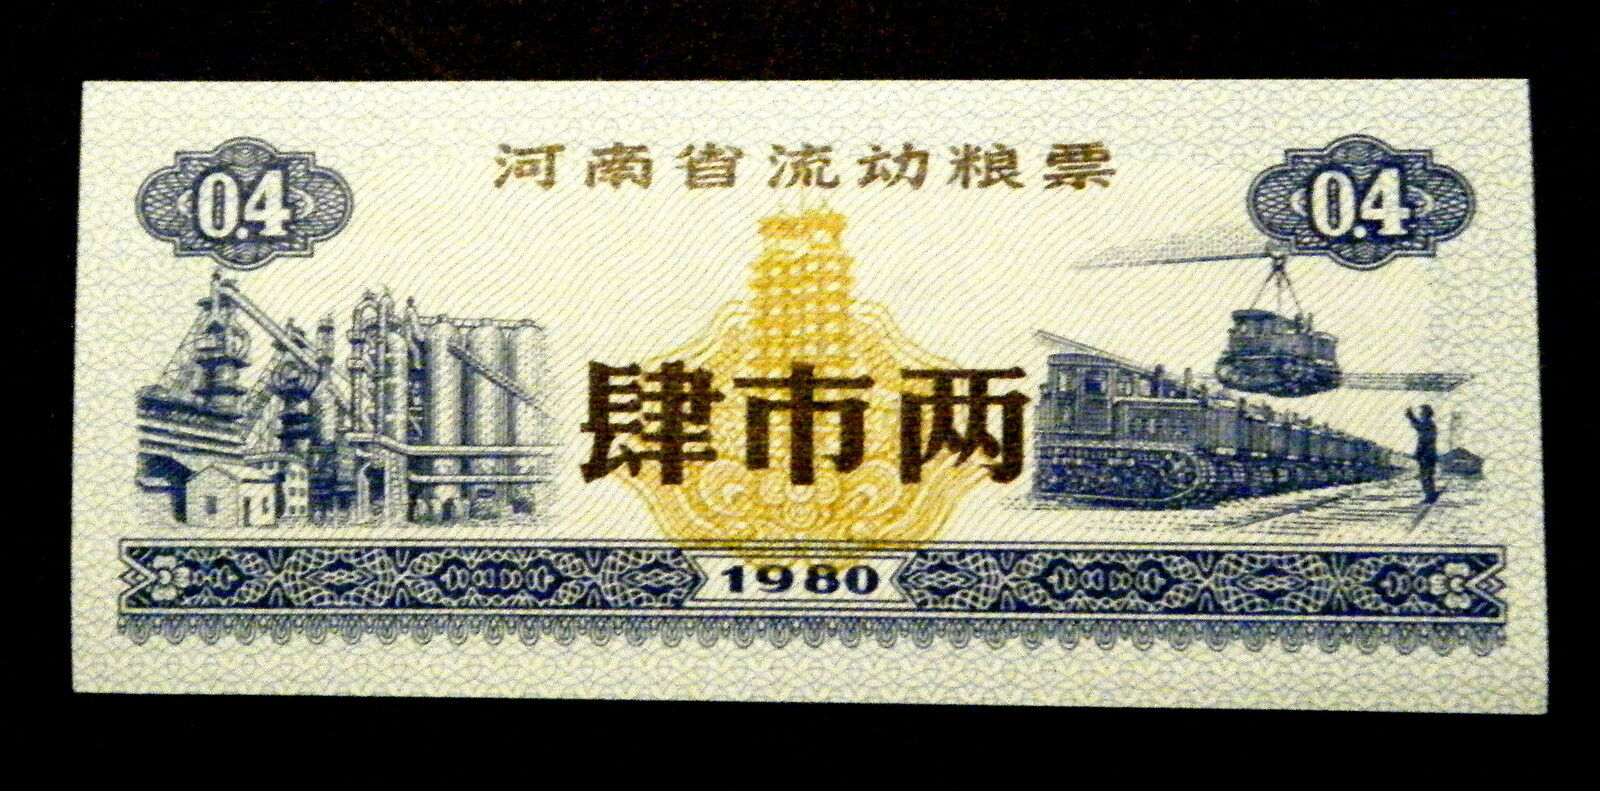 Chine billet chambre de commerce coupon de riz sup a for Chambre de commerce suisse chine